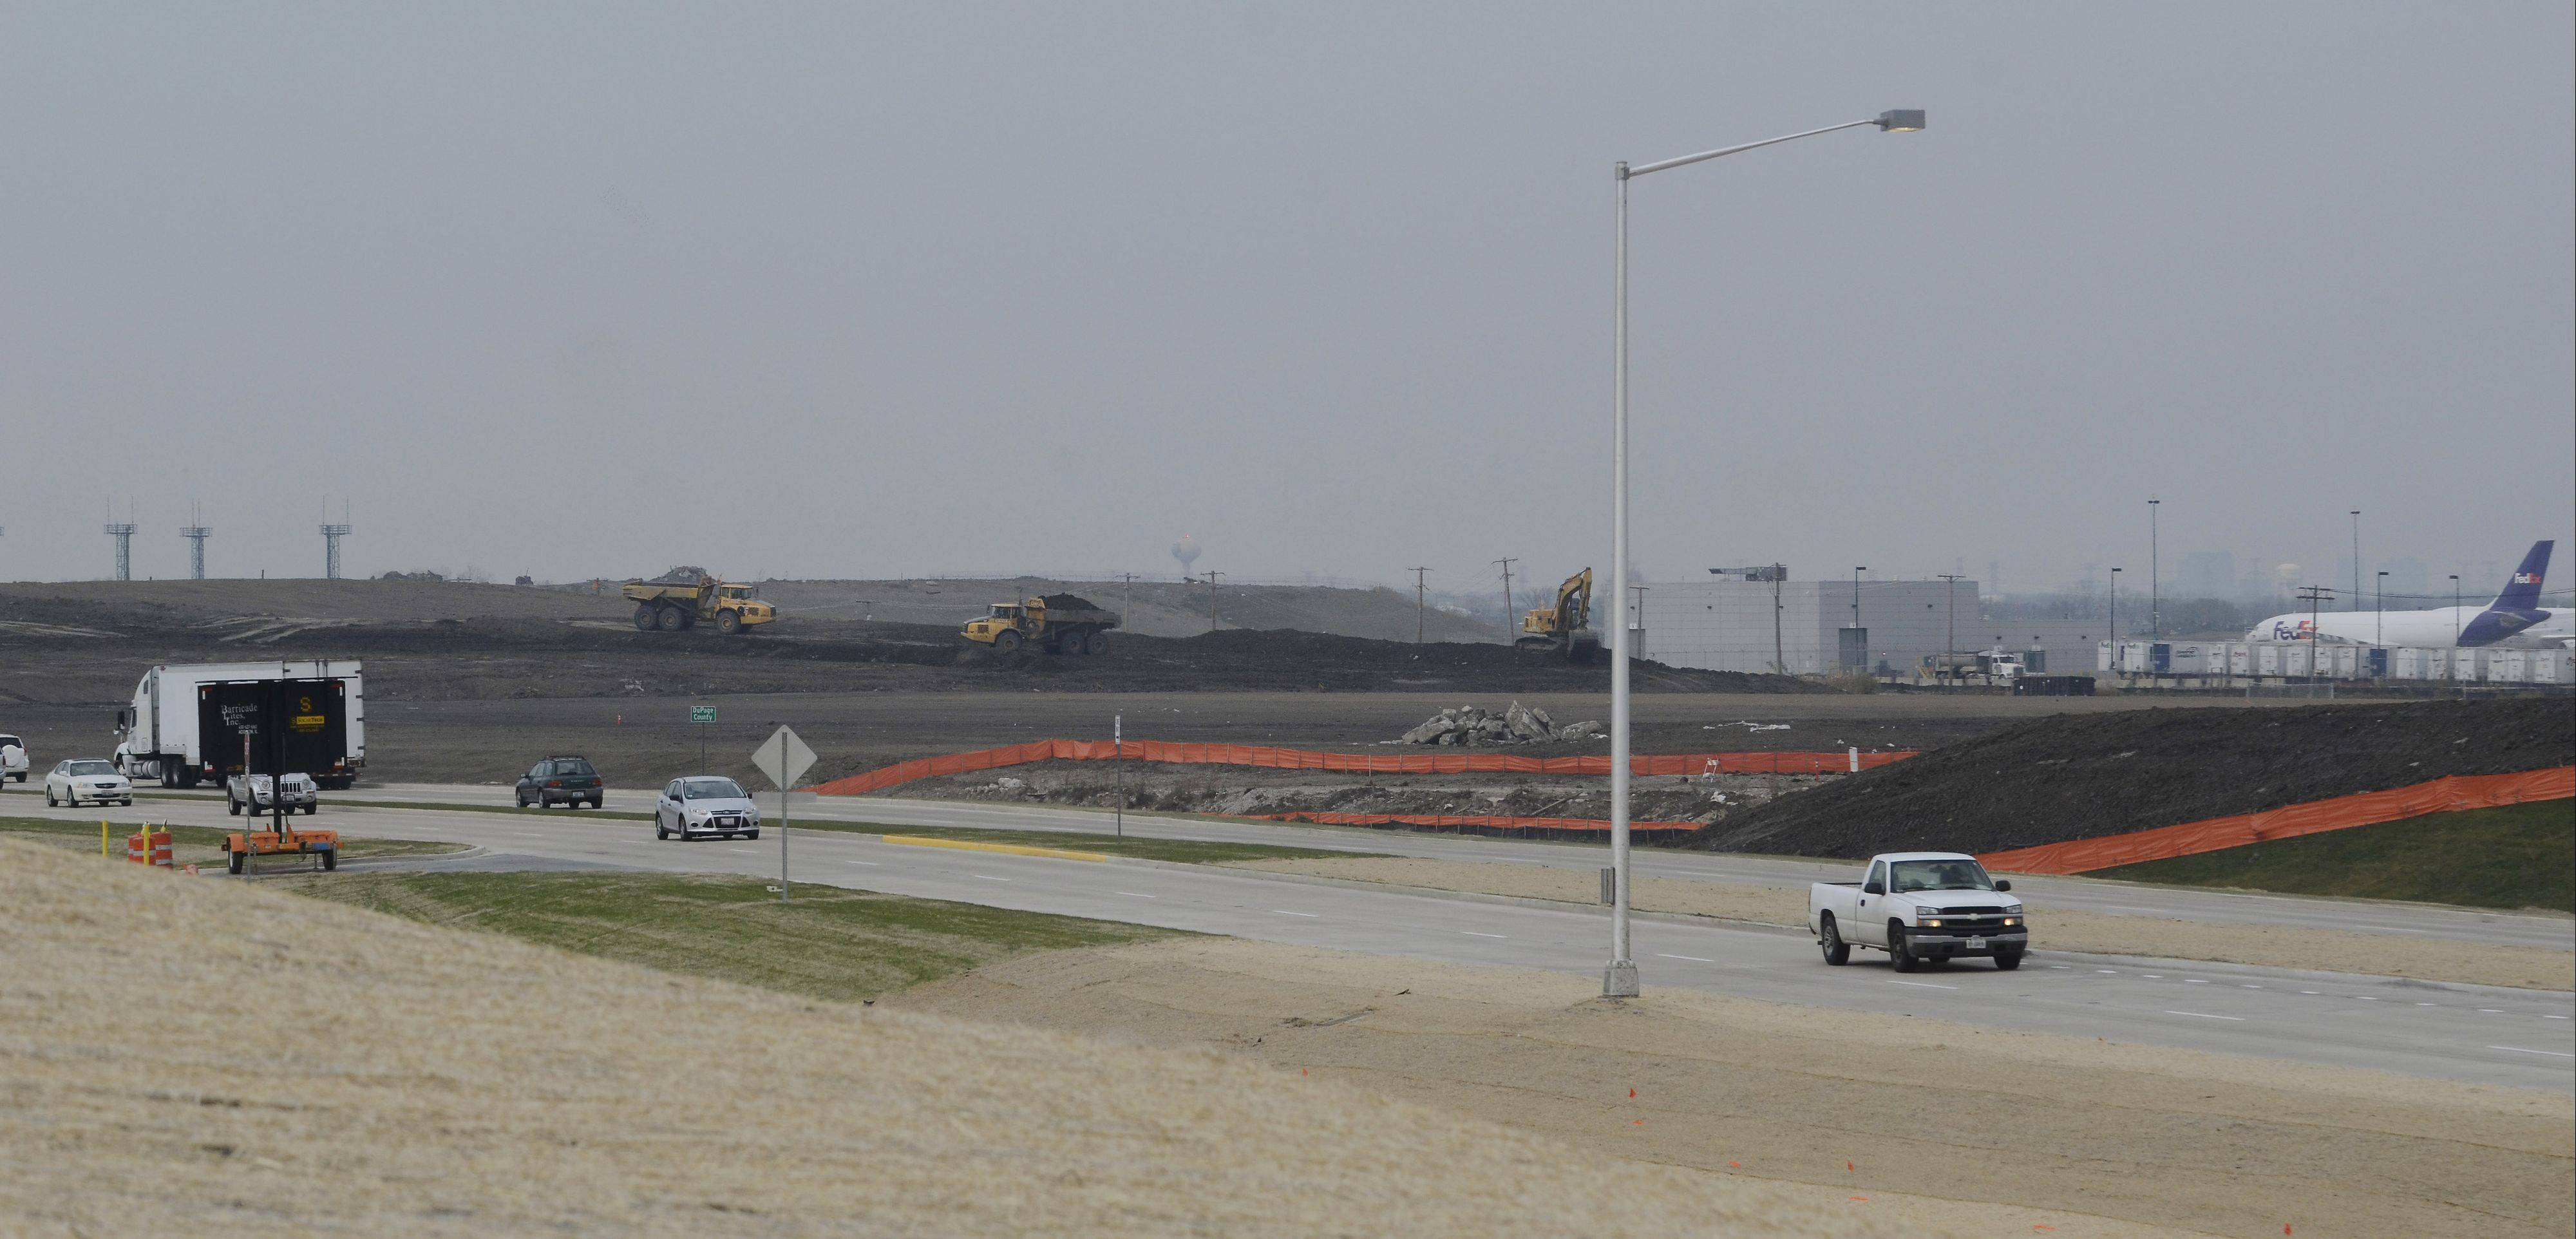 Workers continue progress on a new runway on the south side of O'Hare International Airport, set to be commiss